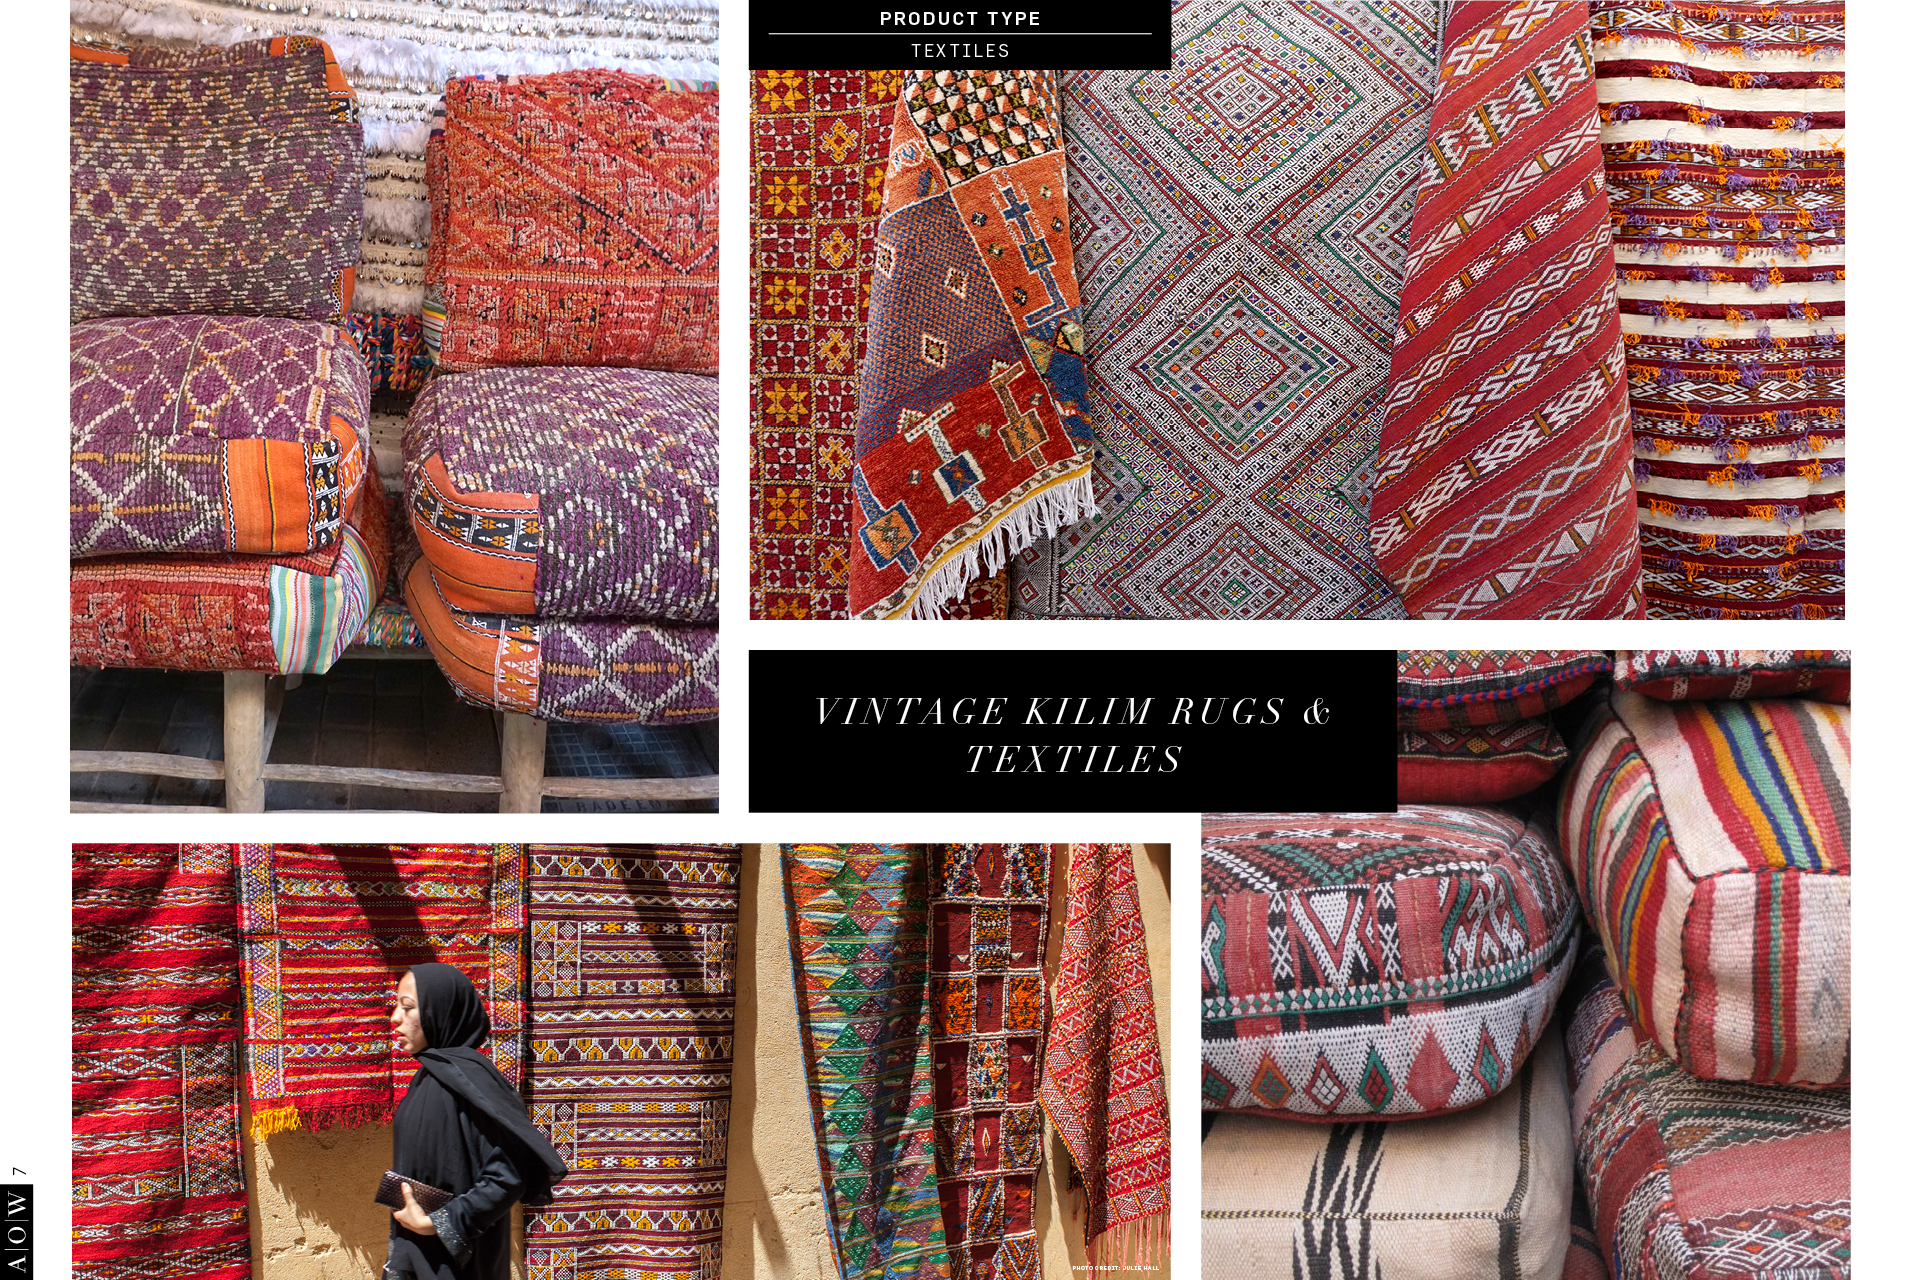 AOW Morocco Report_textiles2.jpg